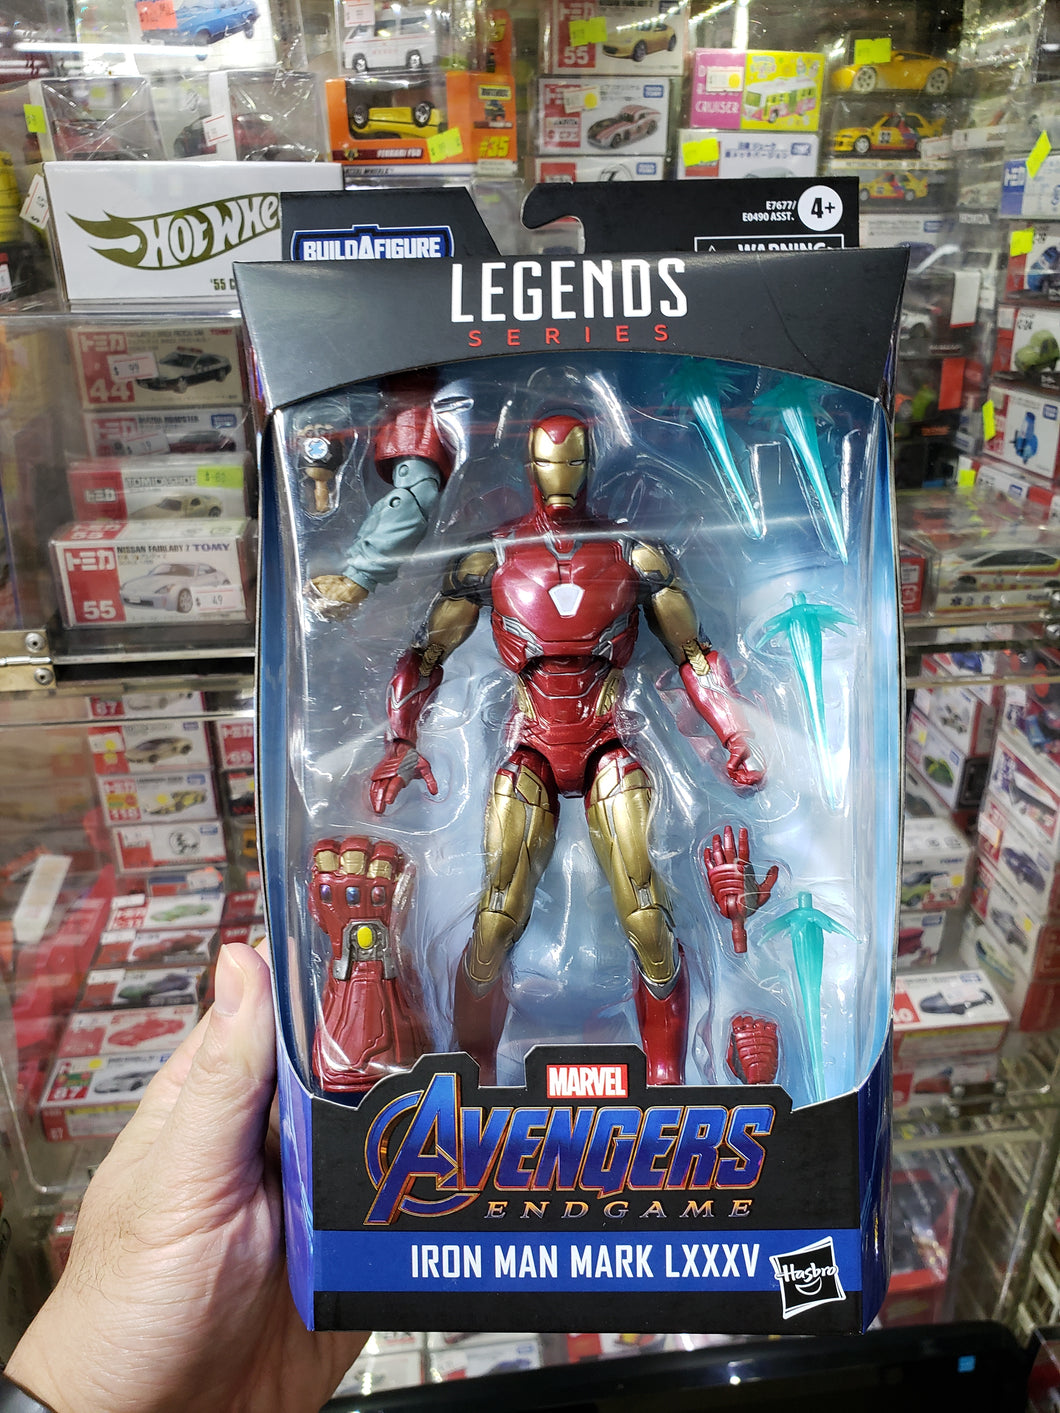 Marvel Legends Built A Figure Ironman Mark LXXXV